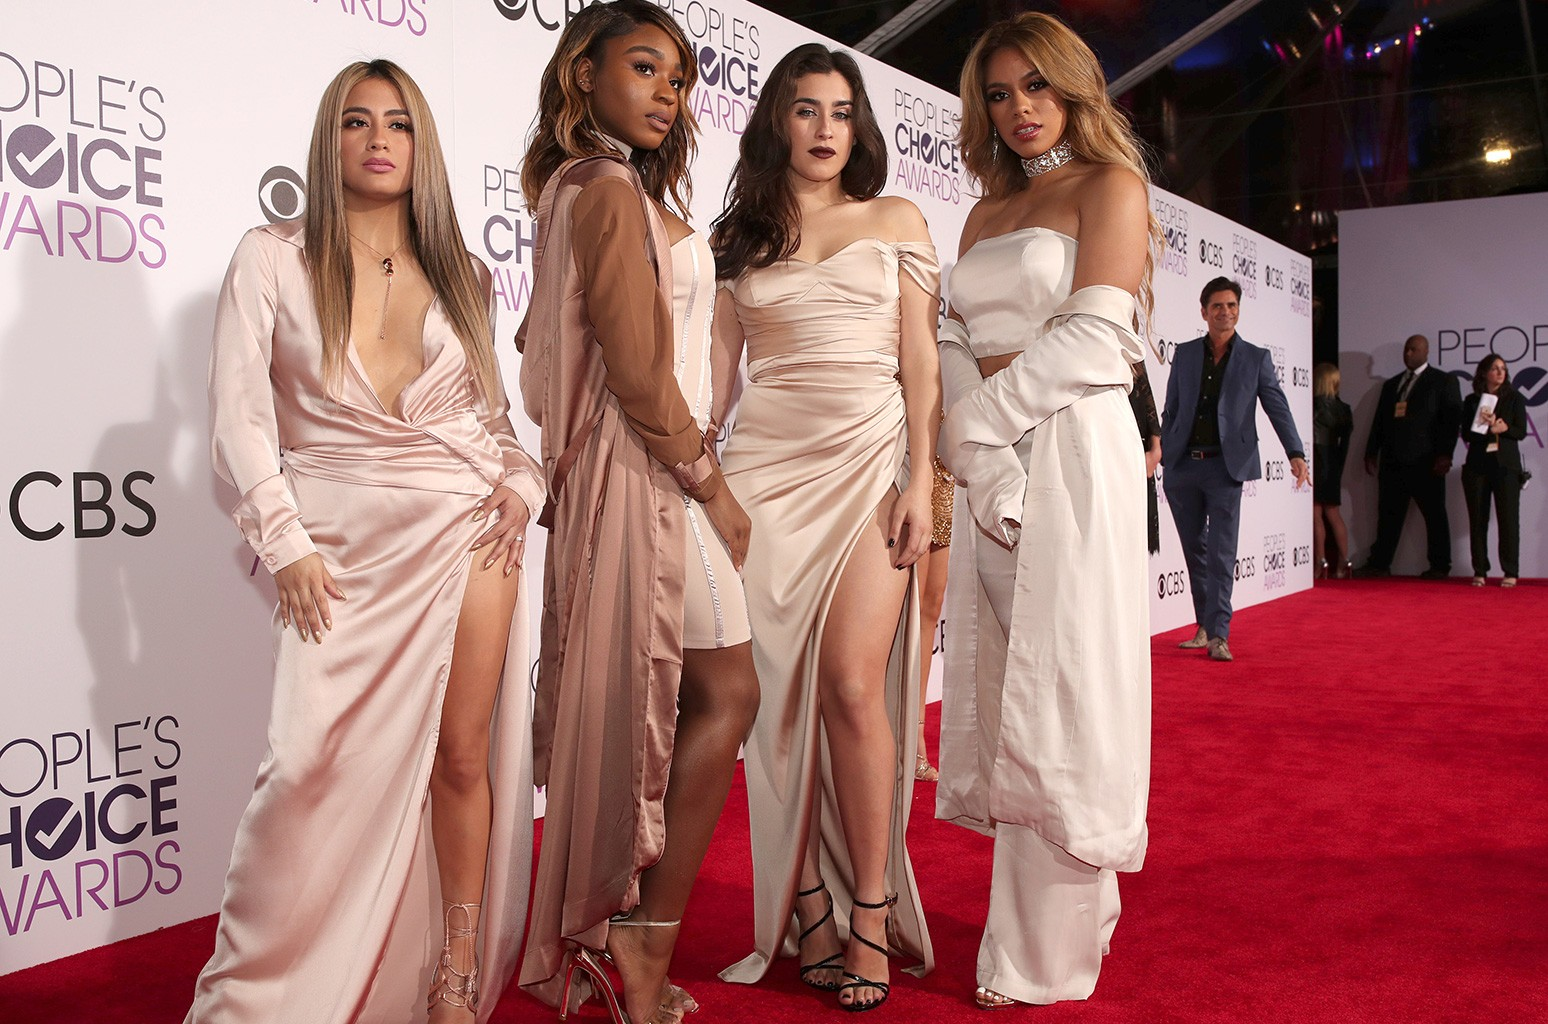 Ally Brooke, Normani Kordei, Lauren Jauregui, and Dinah Jane of music group Fifth Harmony attend  the People's Choice Awards 2017 at Microsoft Theater on Jan. 18, 2017 in Los Angeles.